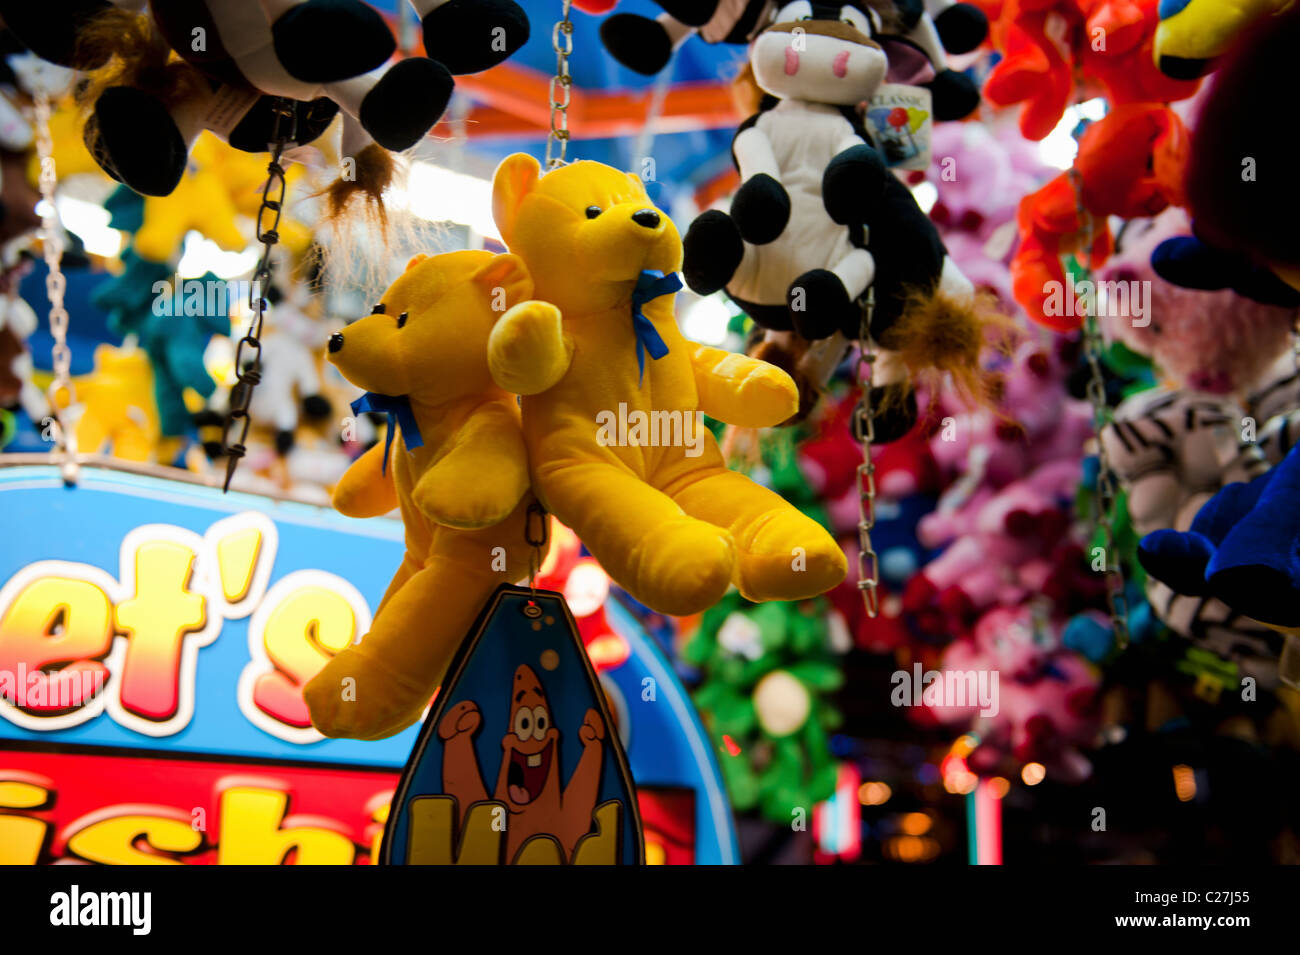 Carnival Game With Teddy Bear Prizes Stock Photo 35817969 Alamy